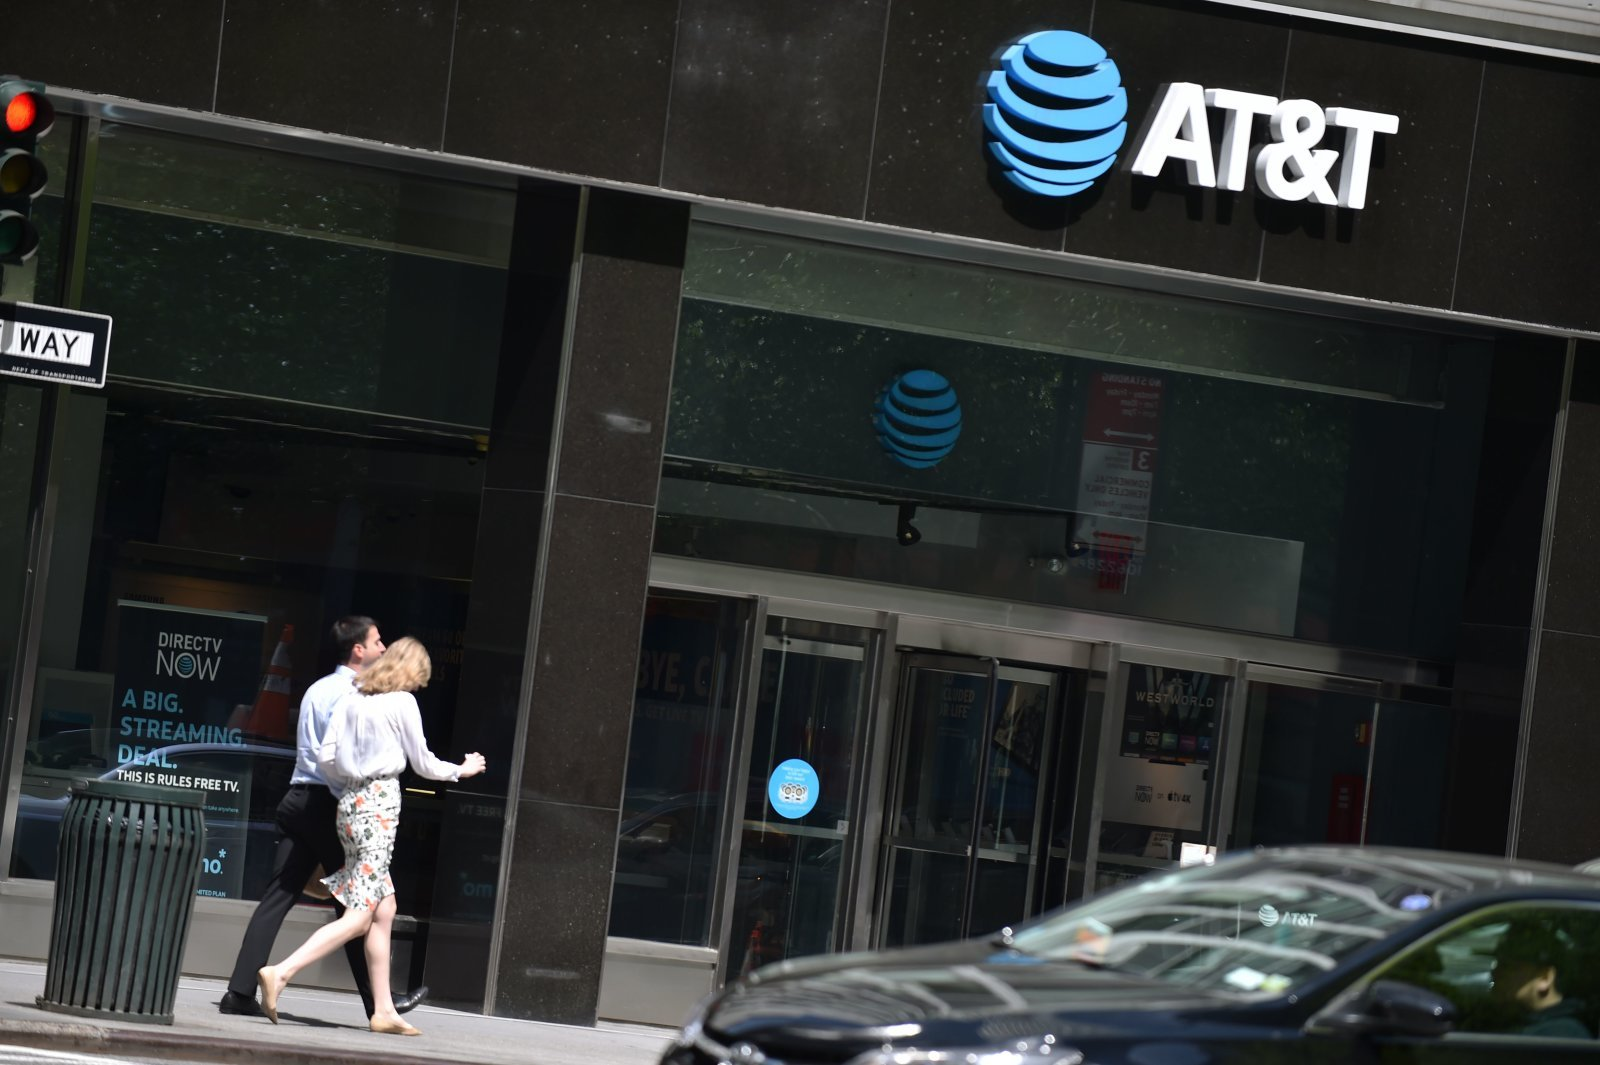 People walk by an AT&T store in New York City, on May 11, 2018. (Photo by HECTOR RETAMAL / AFP)        (Photo credit should read HECTOR RETAMAL/AFP/Getty Images)